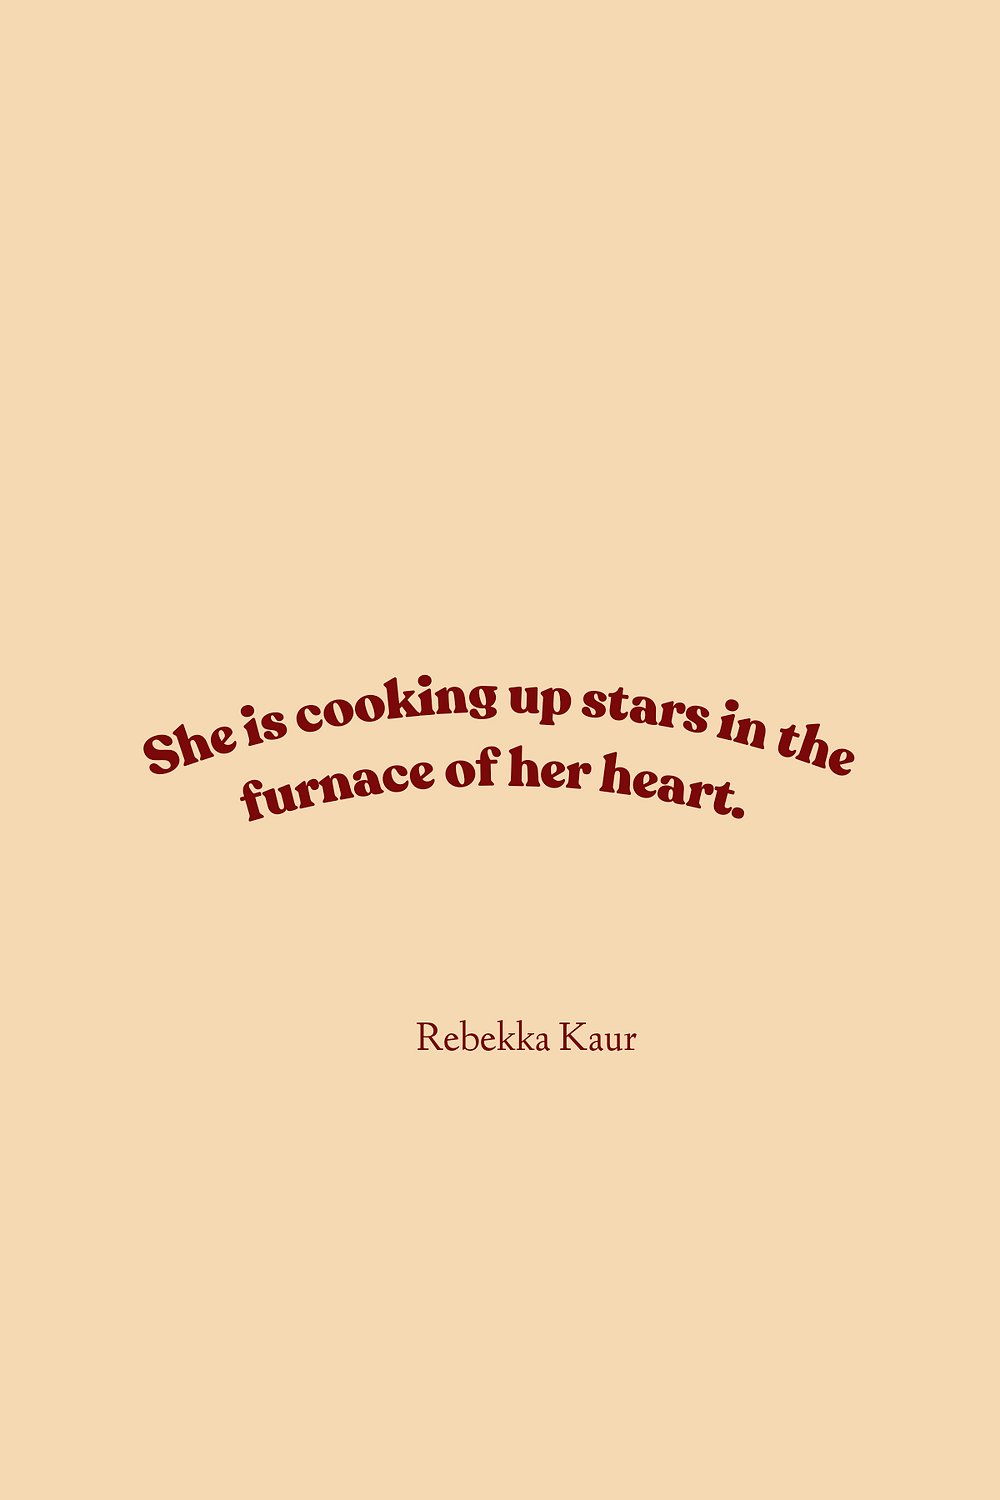 fiction quotes about stars